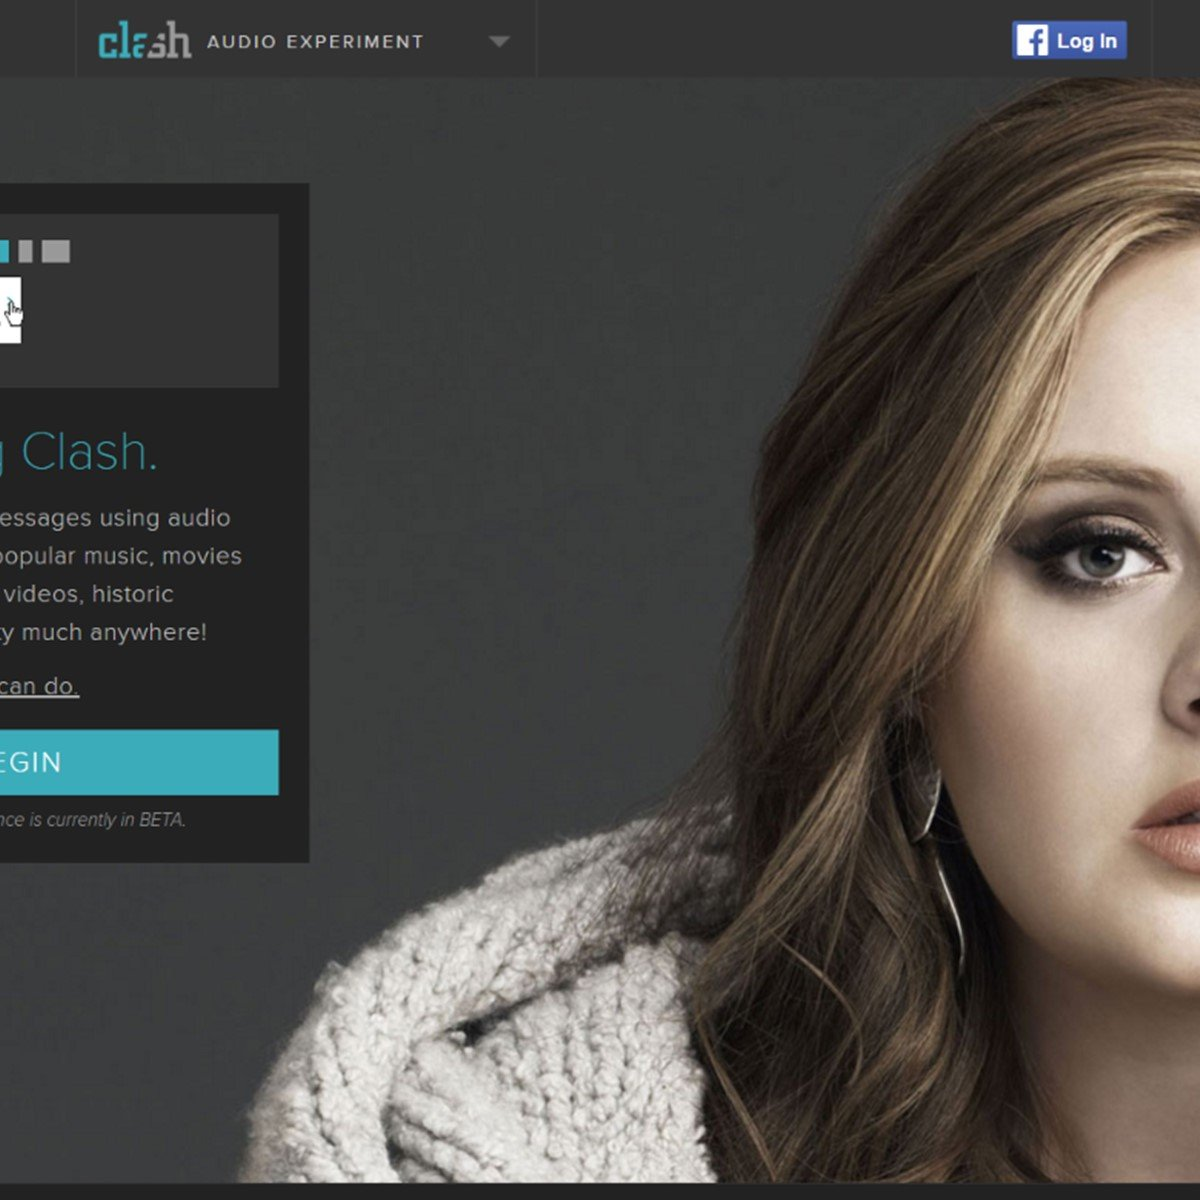 Clash Me Alternatives And Similar Websites And Apps Alternativeto Net Submitted 16 days ago by melobyter1. clash me alternatives and similar